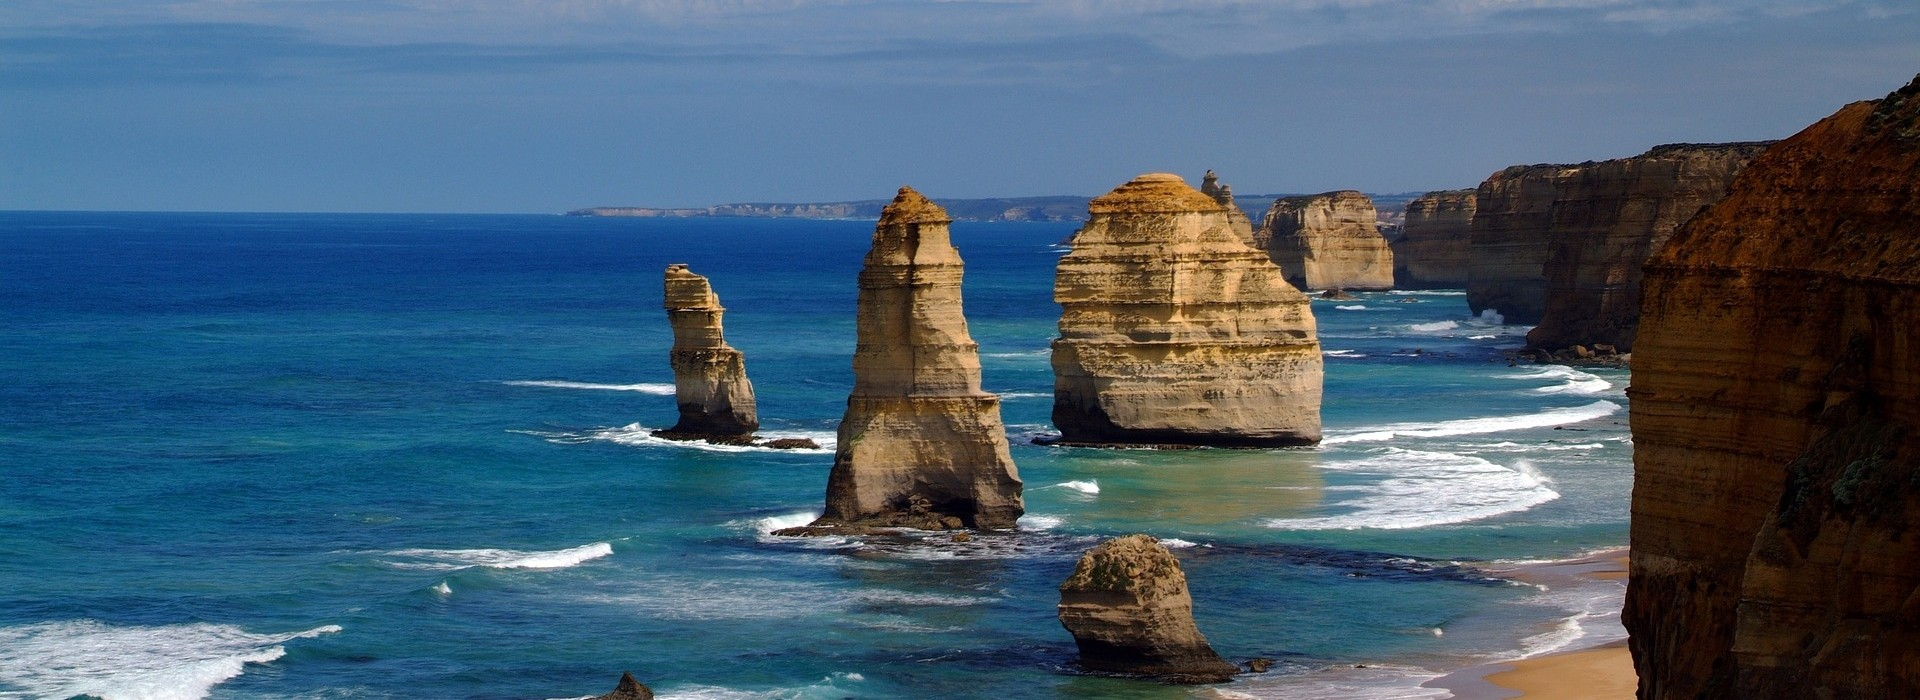 Holiday in Port Campbell and visit the Twelve Apostles